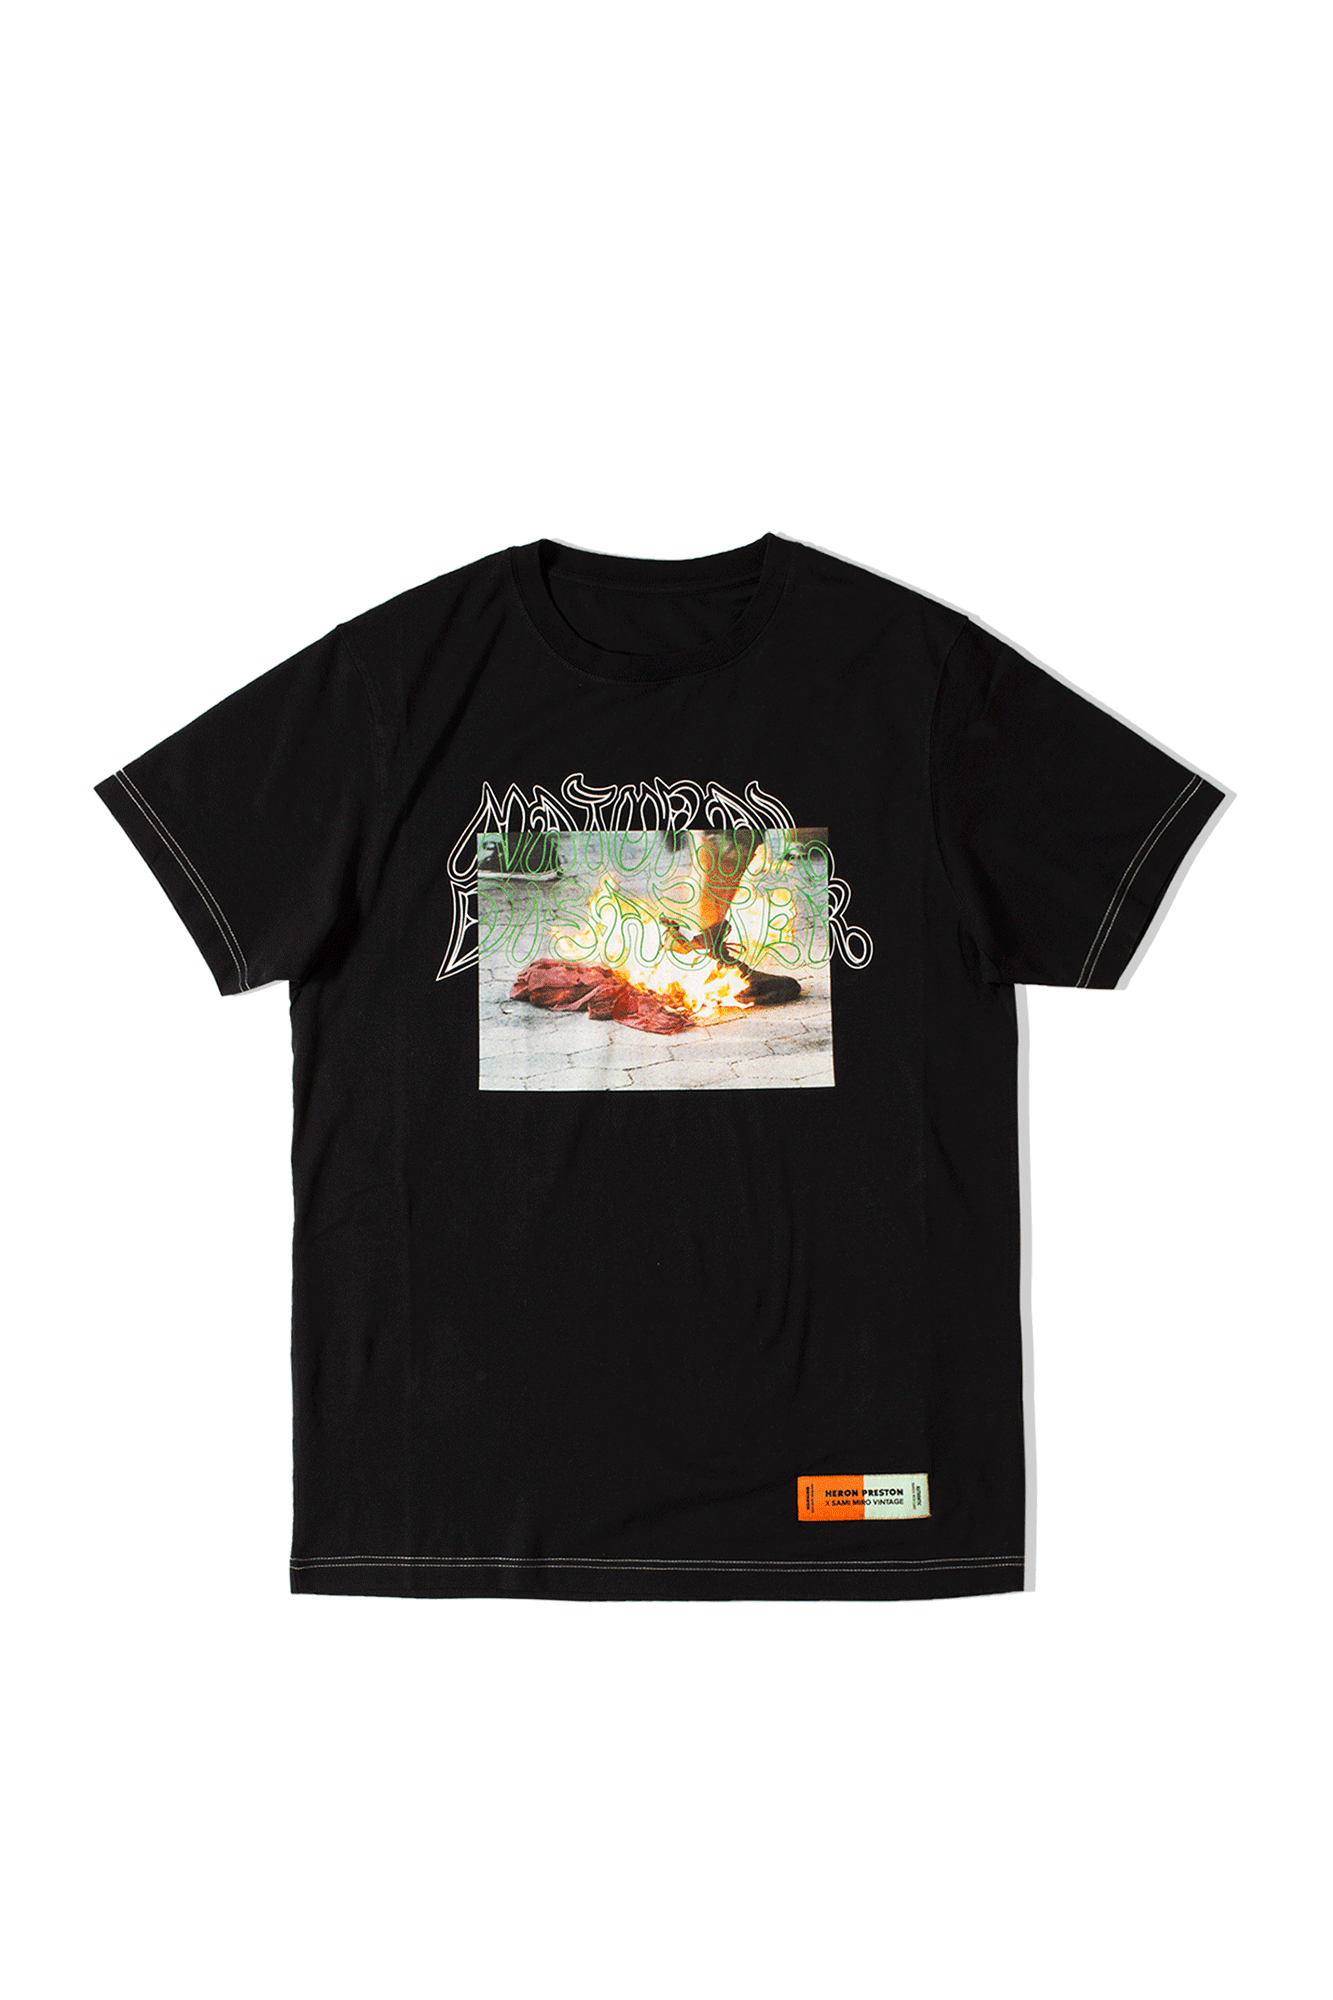 Heron Preston X Sami Miro T-Shirt Black